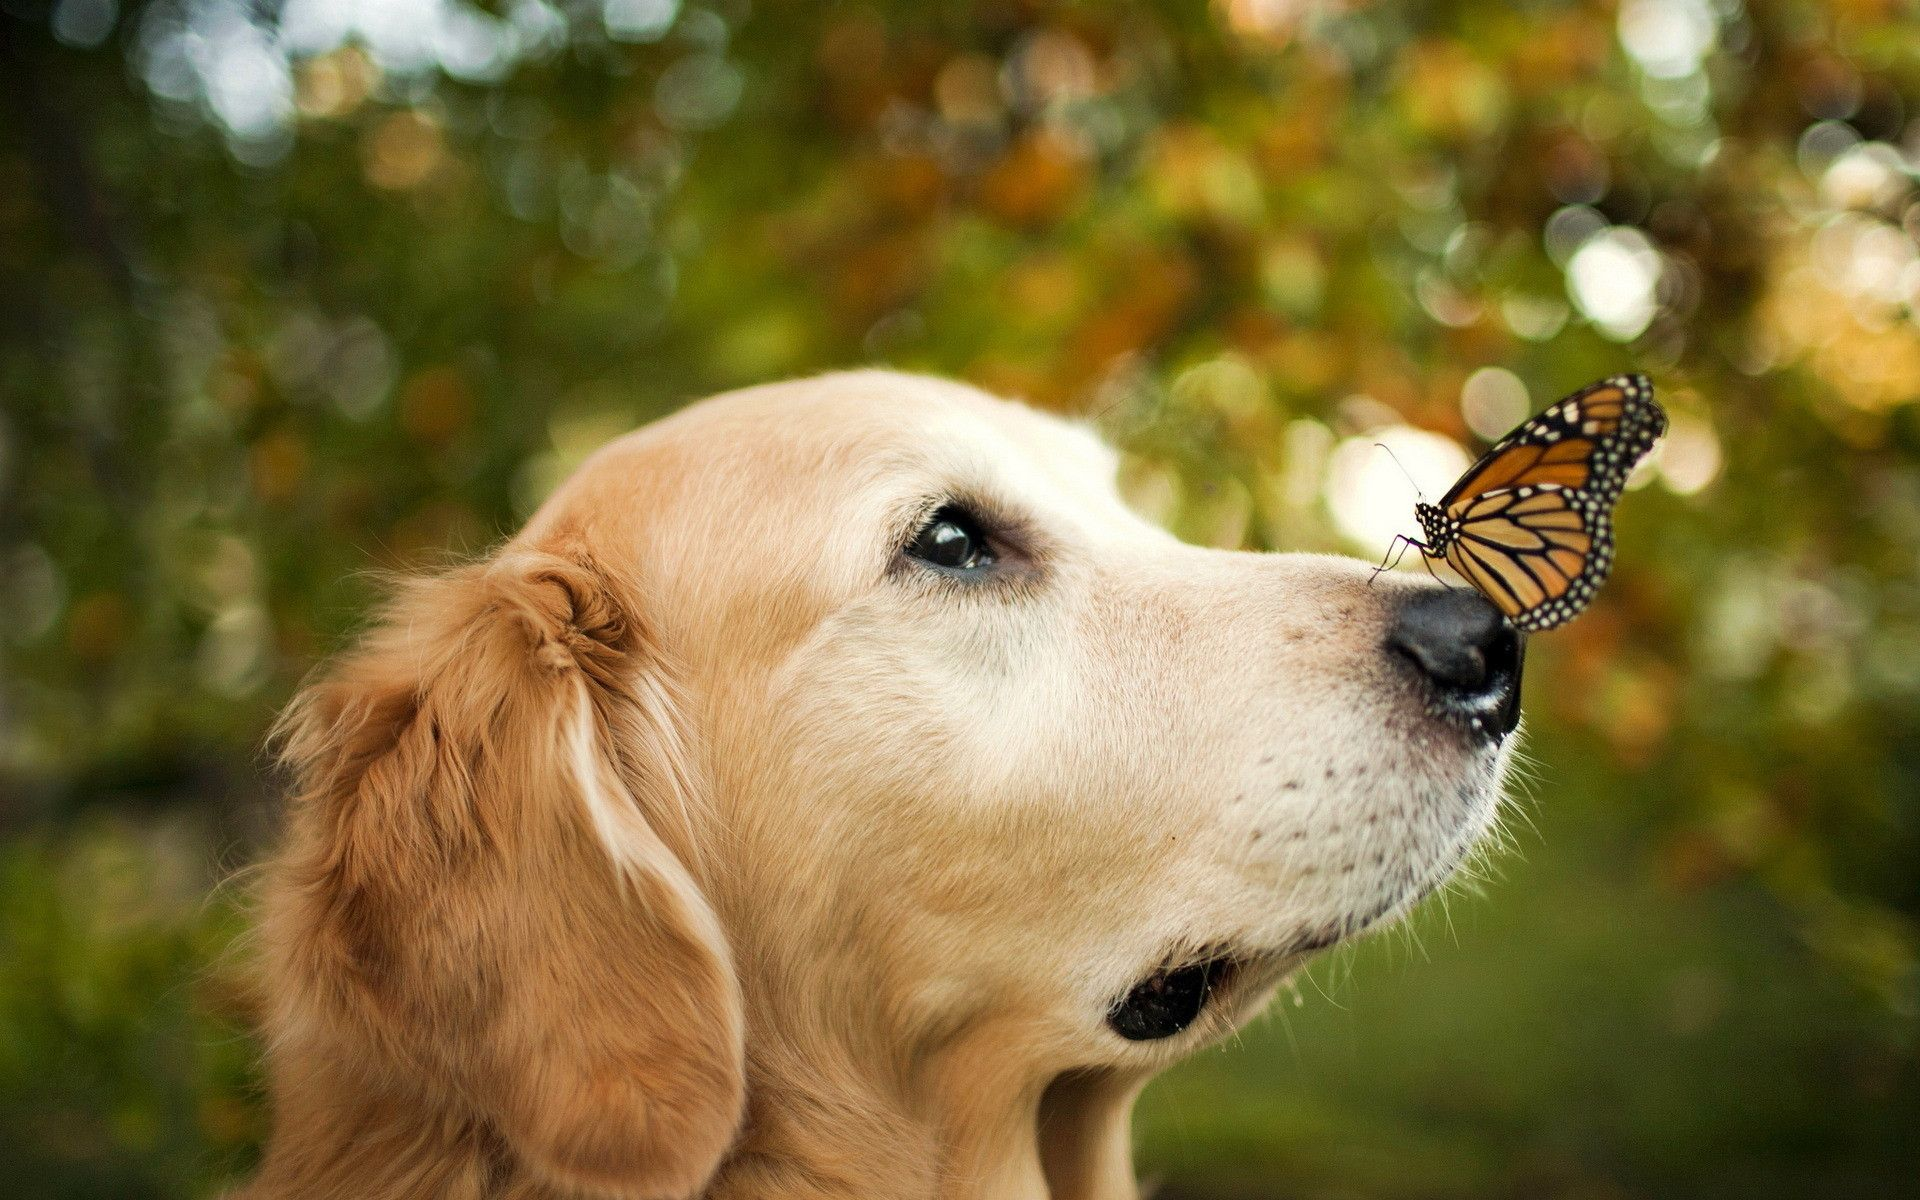 Dog Butterfly Happy Dogs Dog Photos Cute Animals